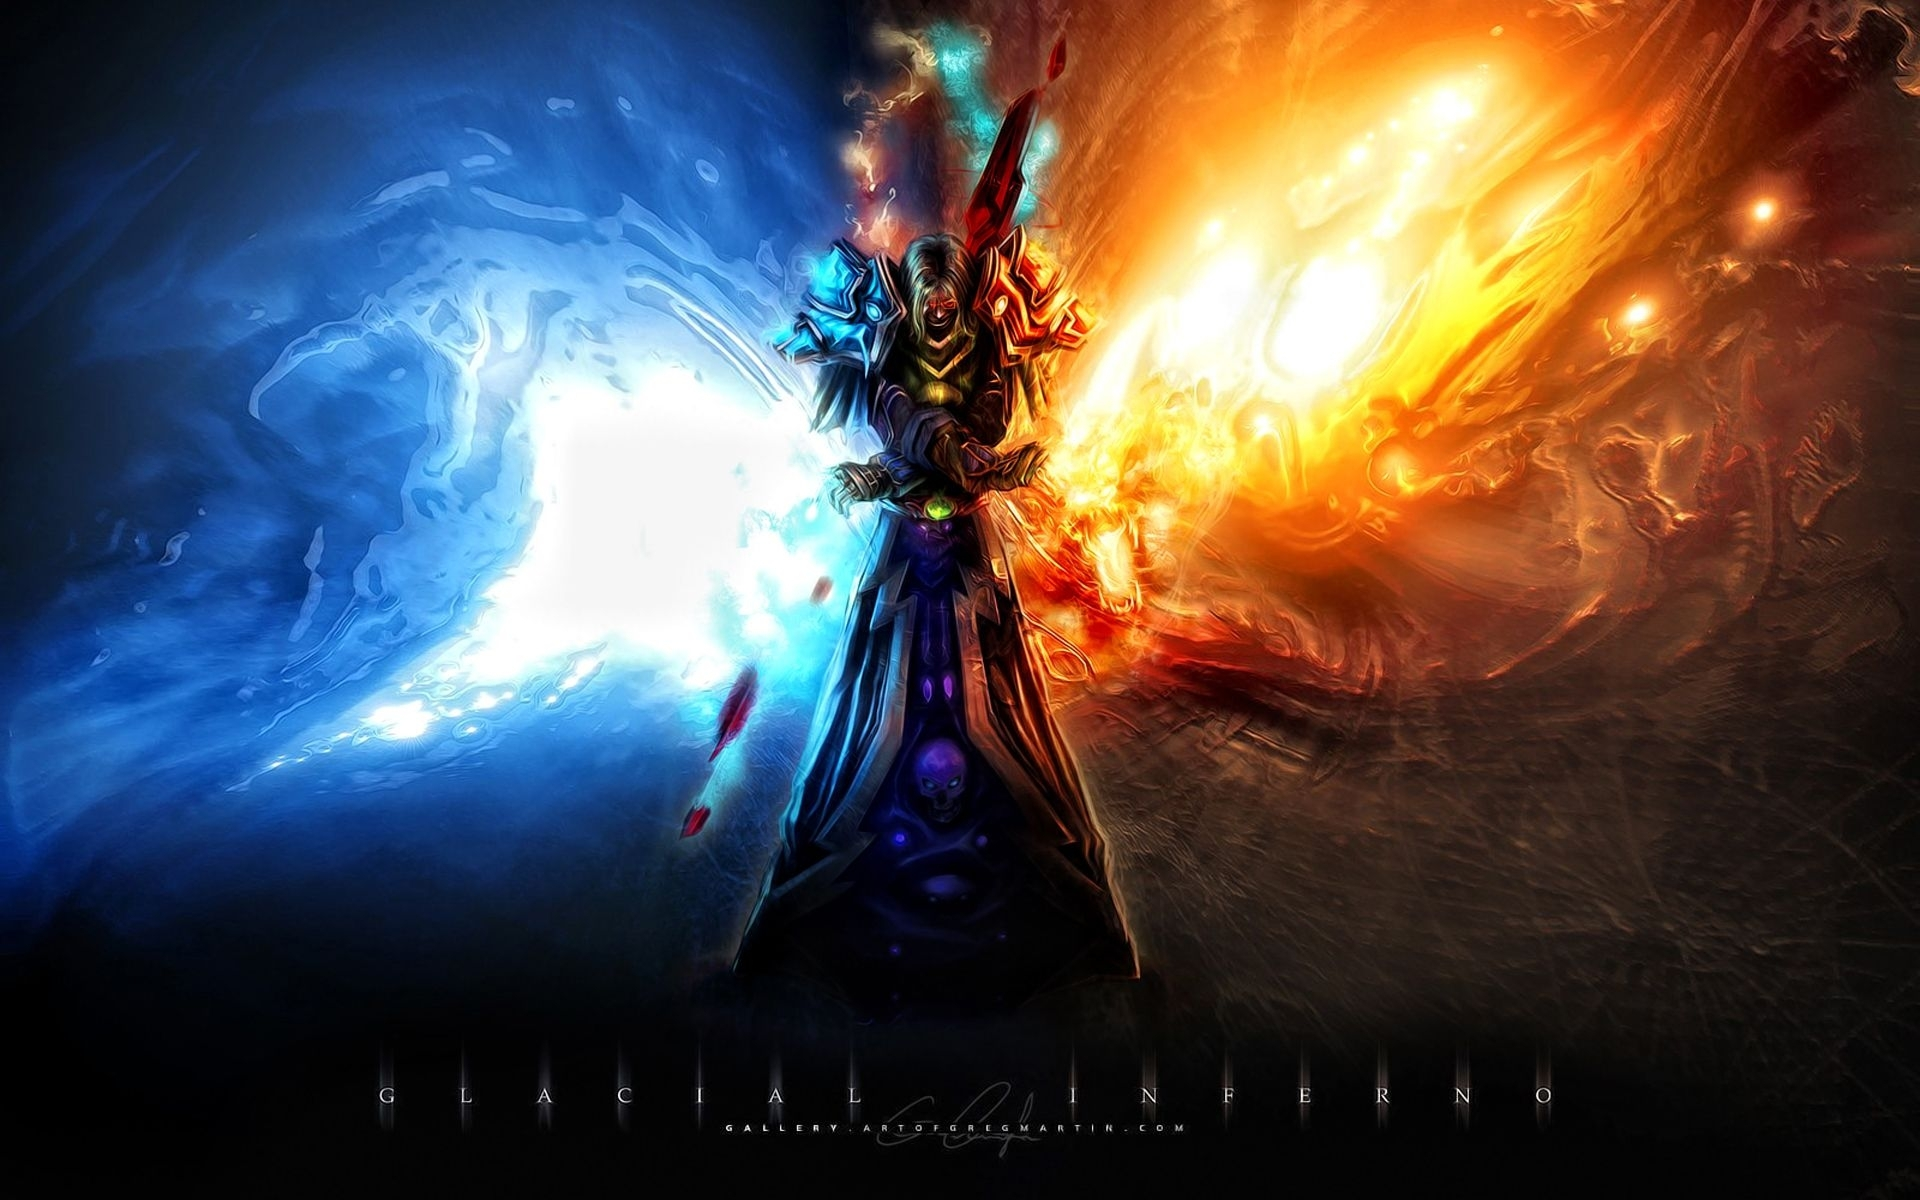 world of warcraft wallpaper frost mage - google search | world of